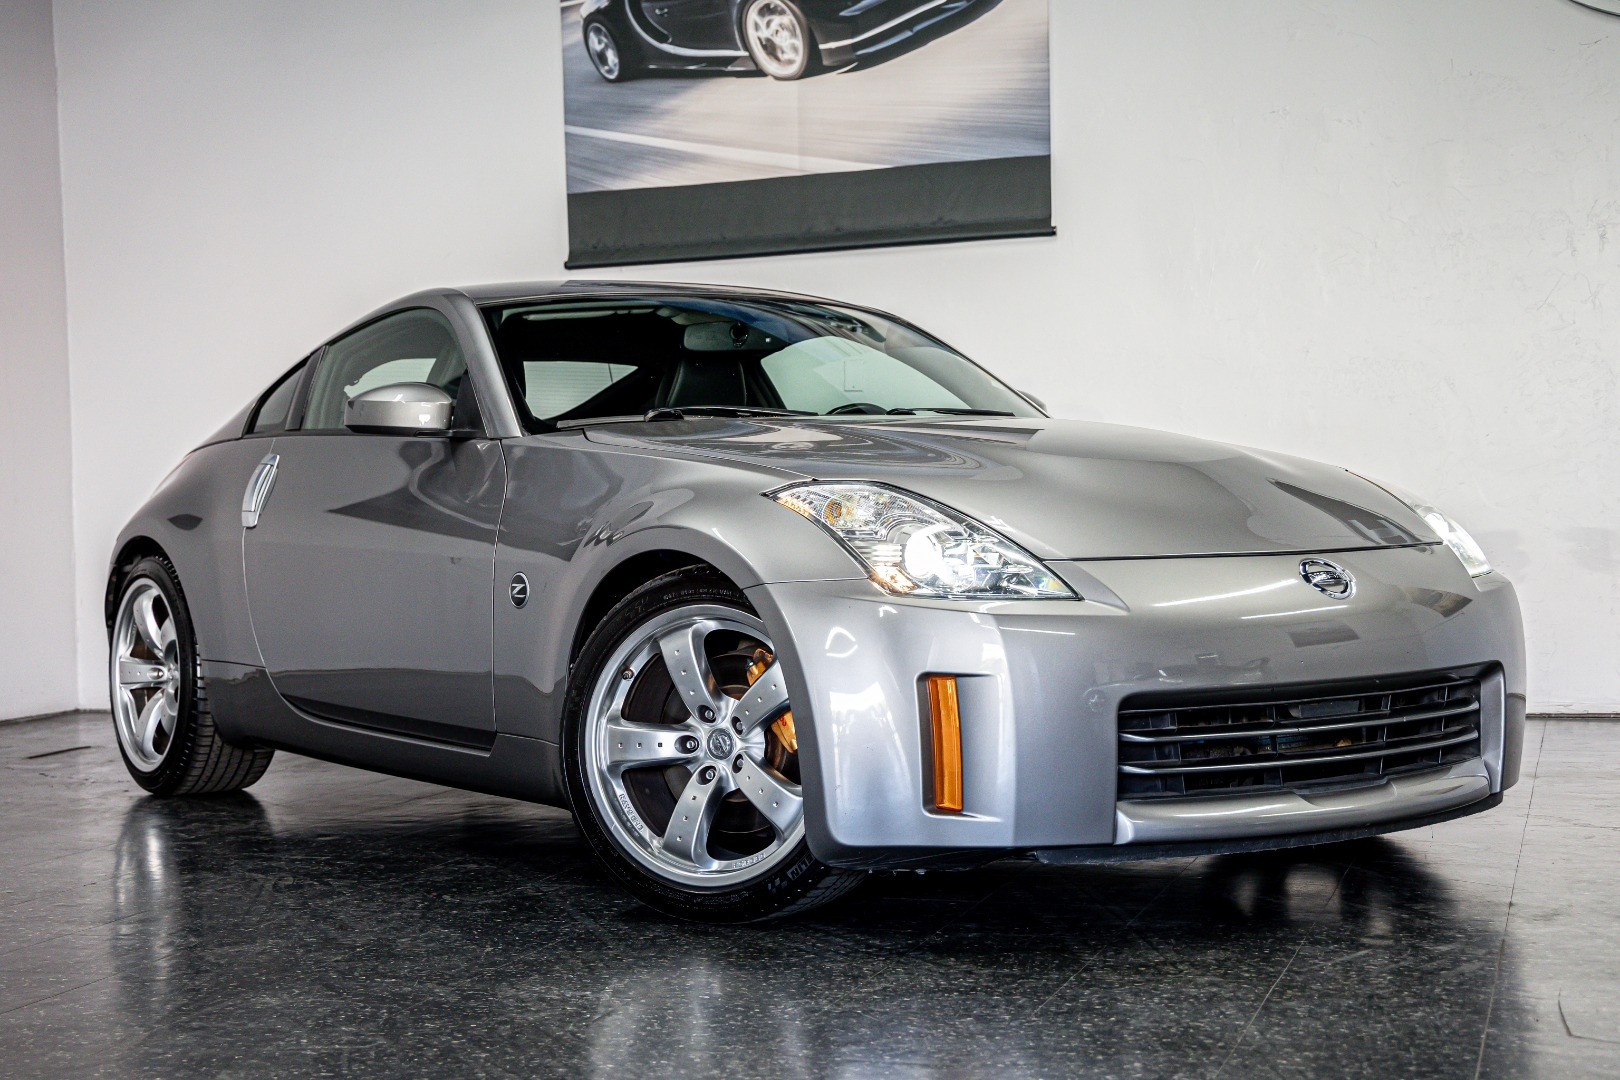 2007 Nissan 350z Gt Iconic Coach Dealership In San Diego